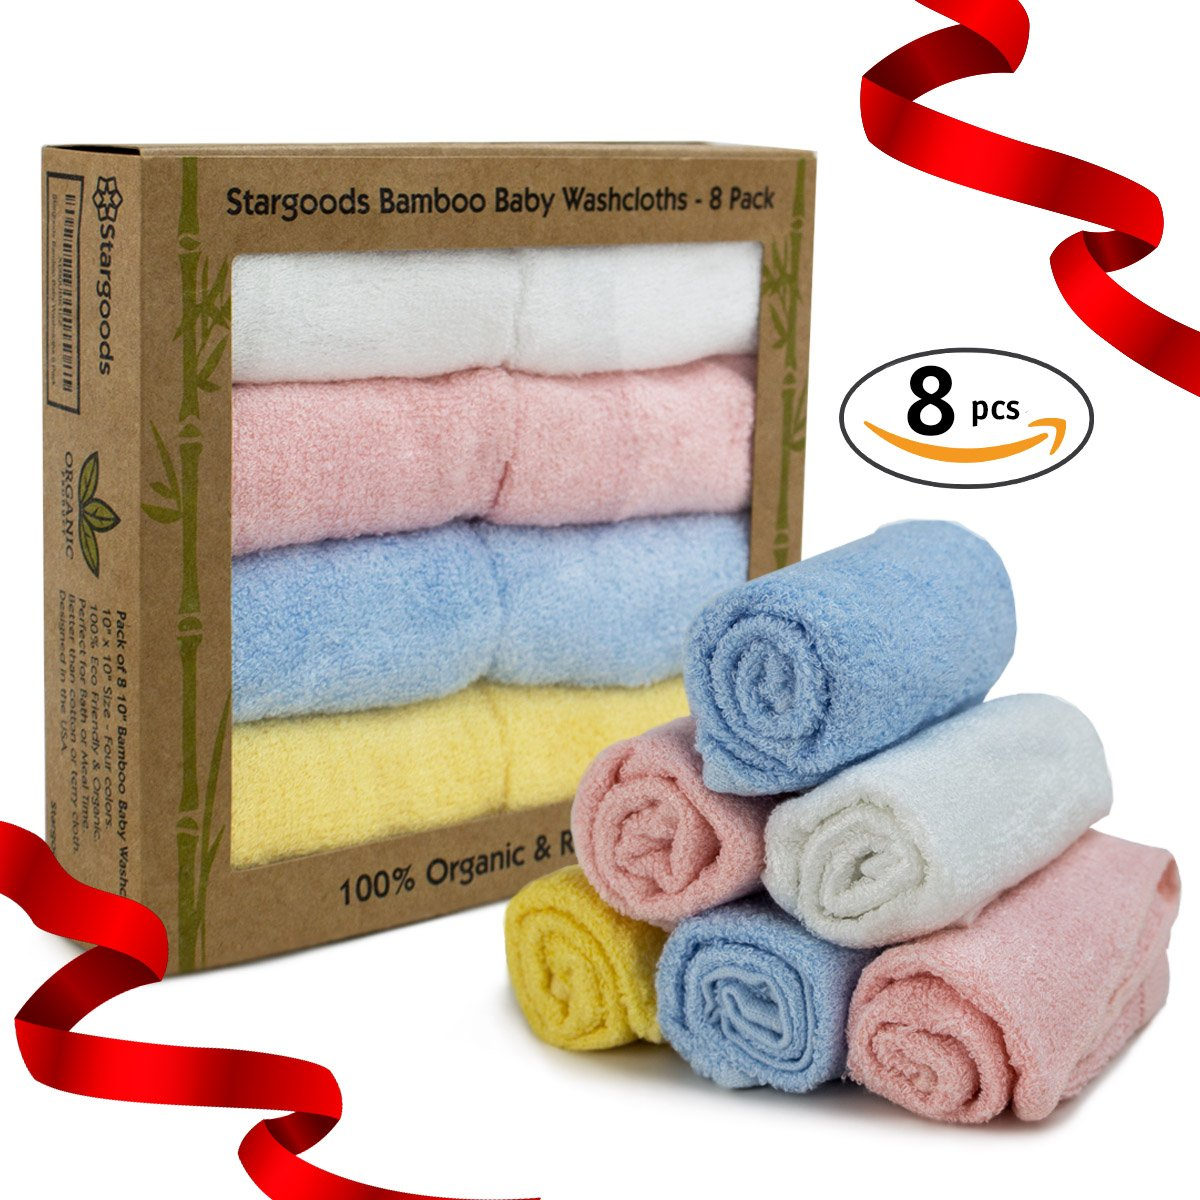 Bamboo Baby Washcloths for Face and Bath, Set of 8 Soft Natural Organic Towels Stargoods STA-BW-8PACK